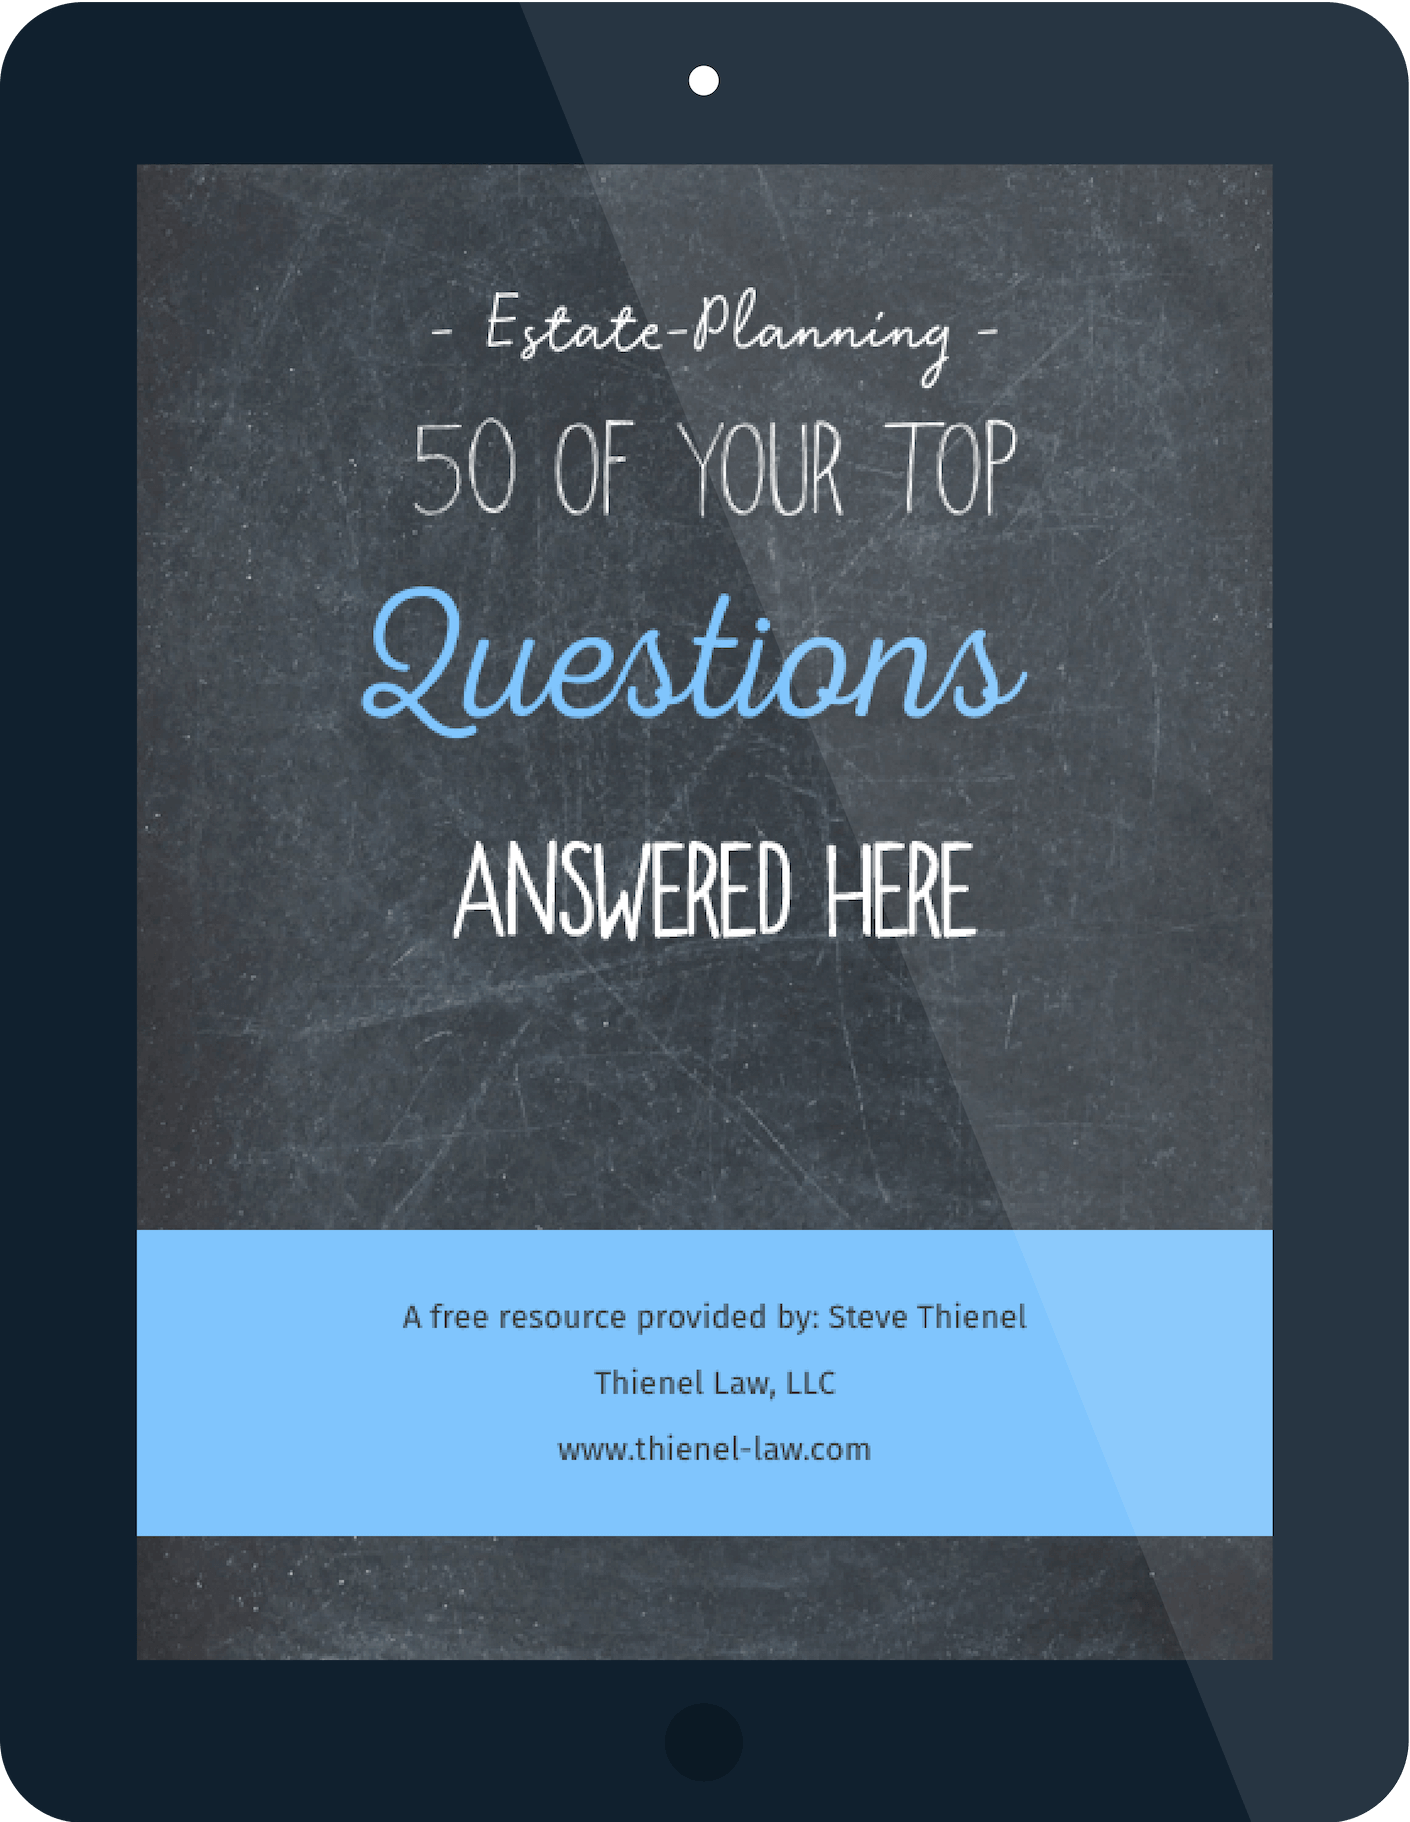 Estate-Planning - 50 Top Questions and Answers